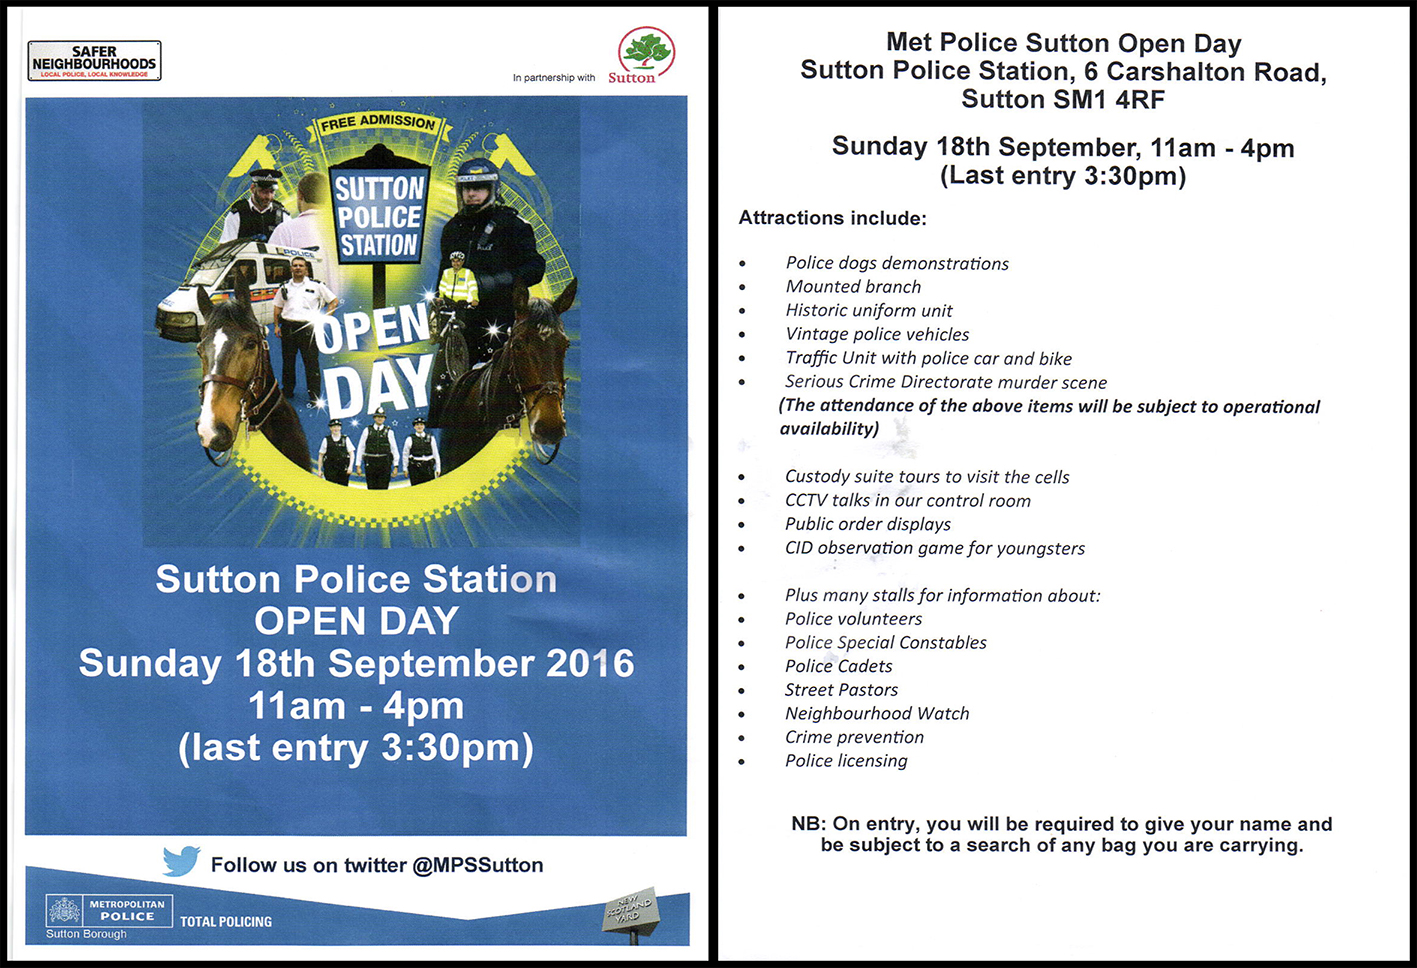 sutton_police_openday_sept2016